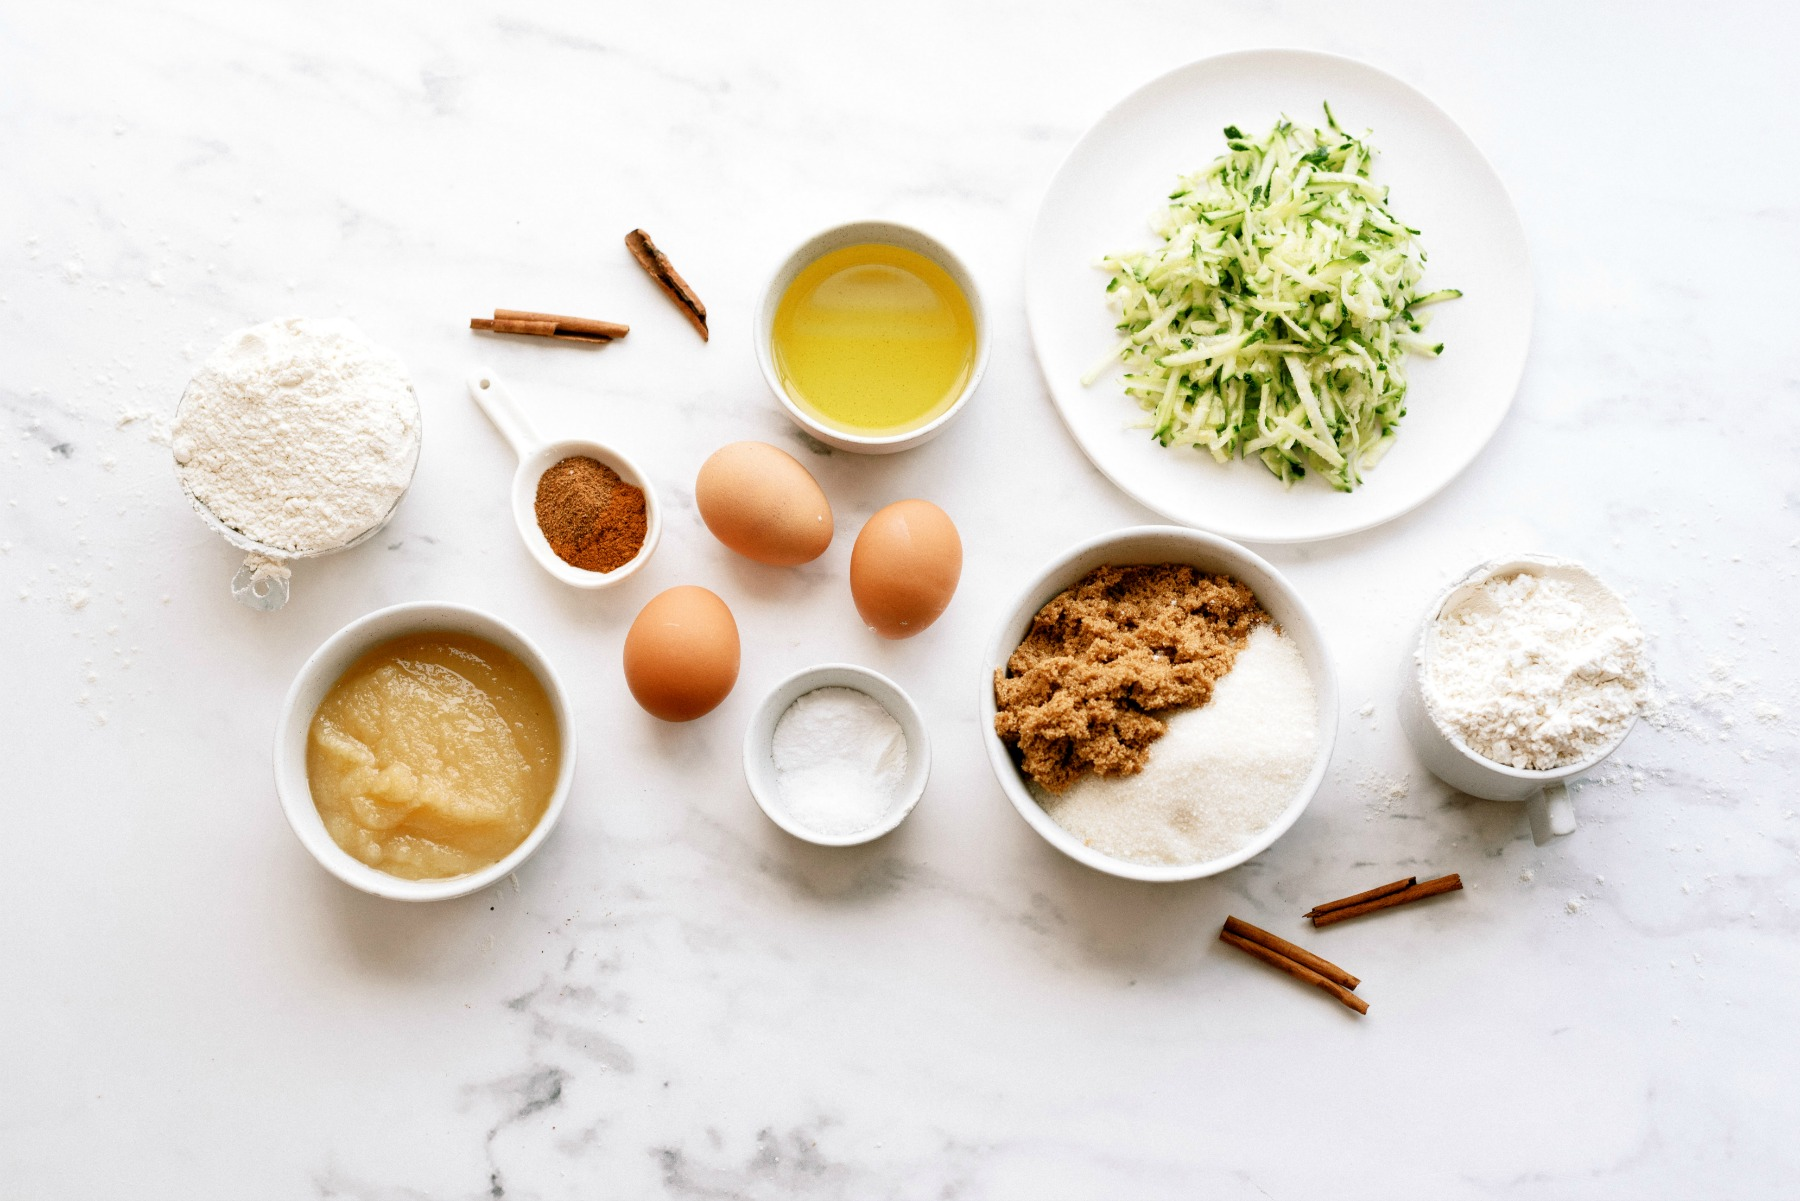 Ingredients for Cinnamon Zucchini Cake with Cream Cheese Frosting